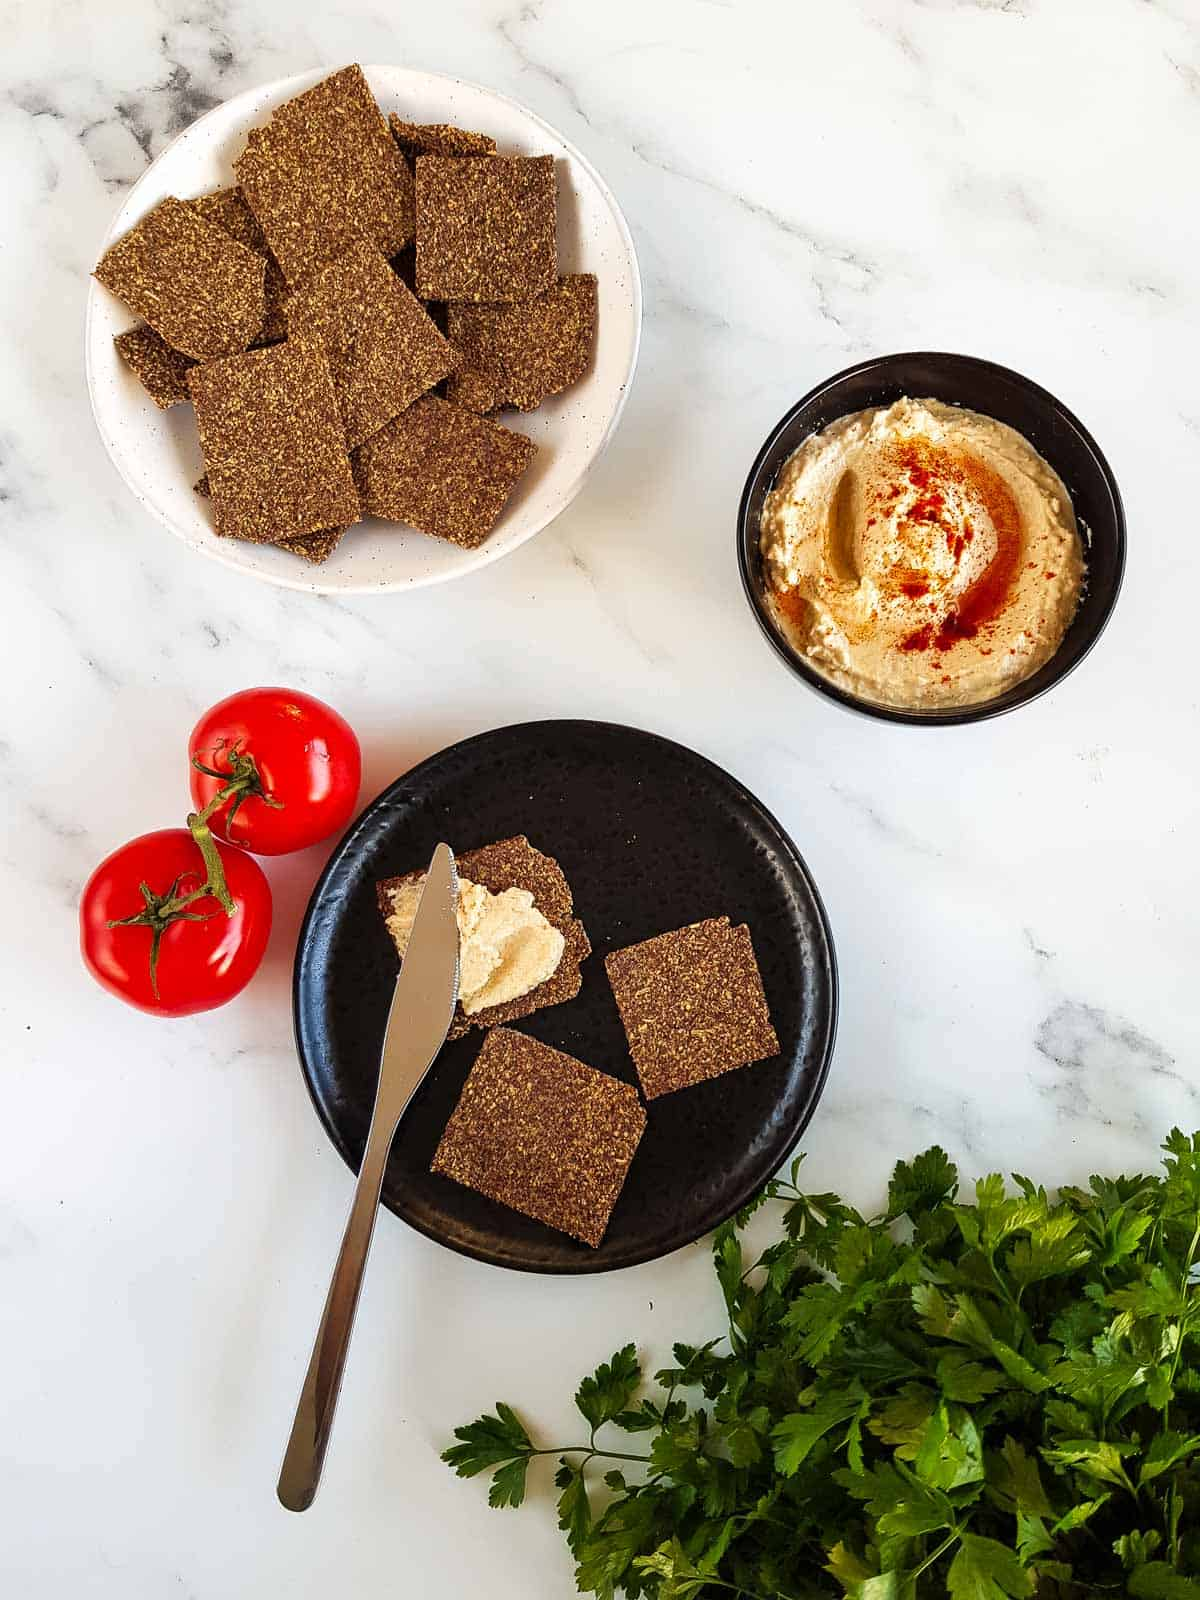 Flaxseed crackers on a plate, with a knife spreading hummus on top. A bowl of hummus and tomatoes on the side.